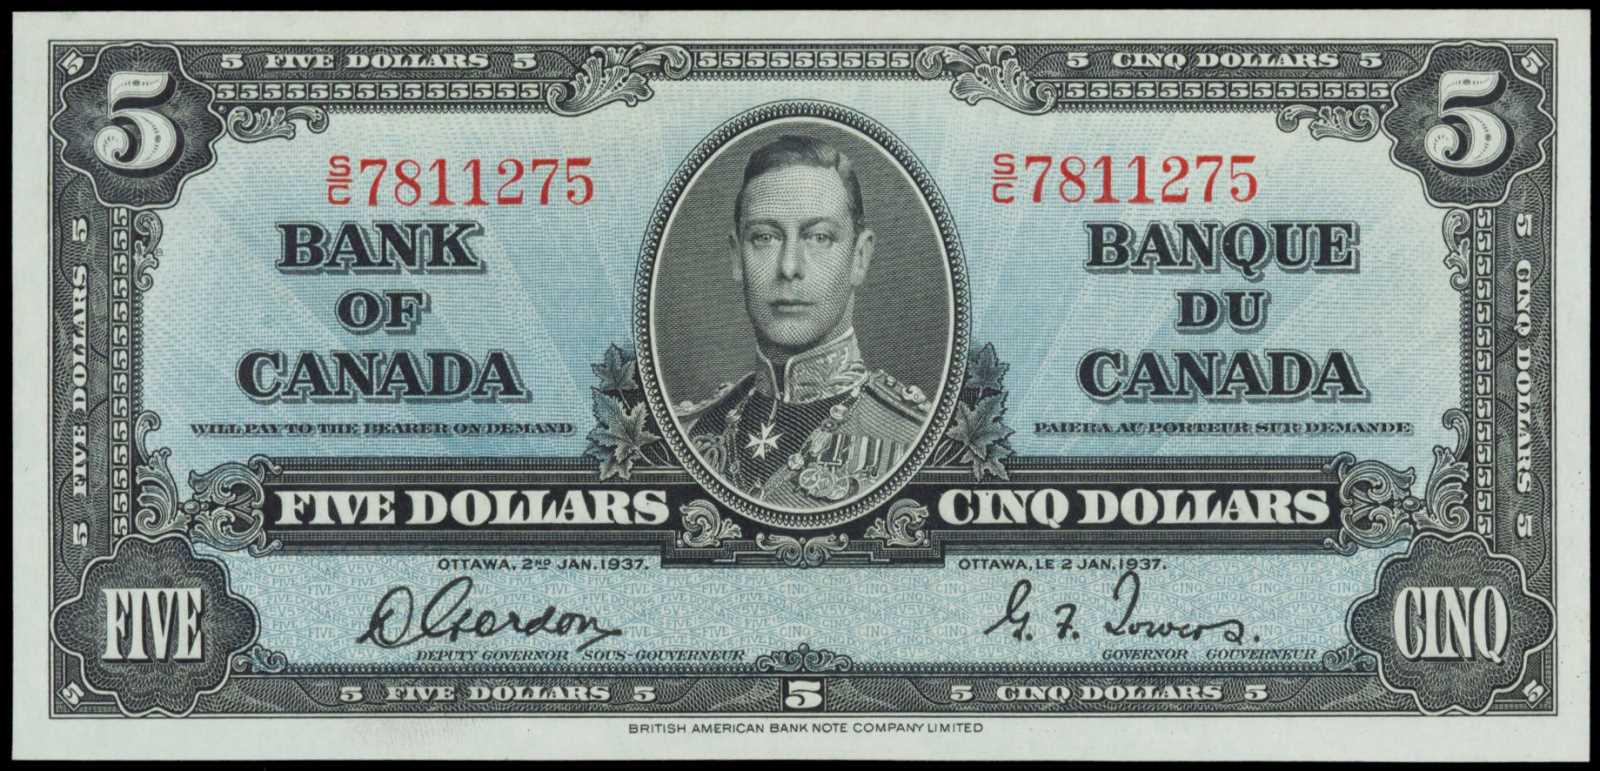 Value of 2nd Jan  1937 $5 Bill from The Bank of Canada